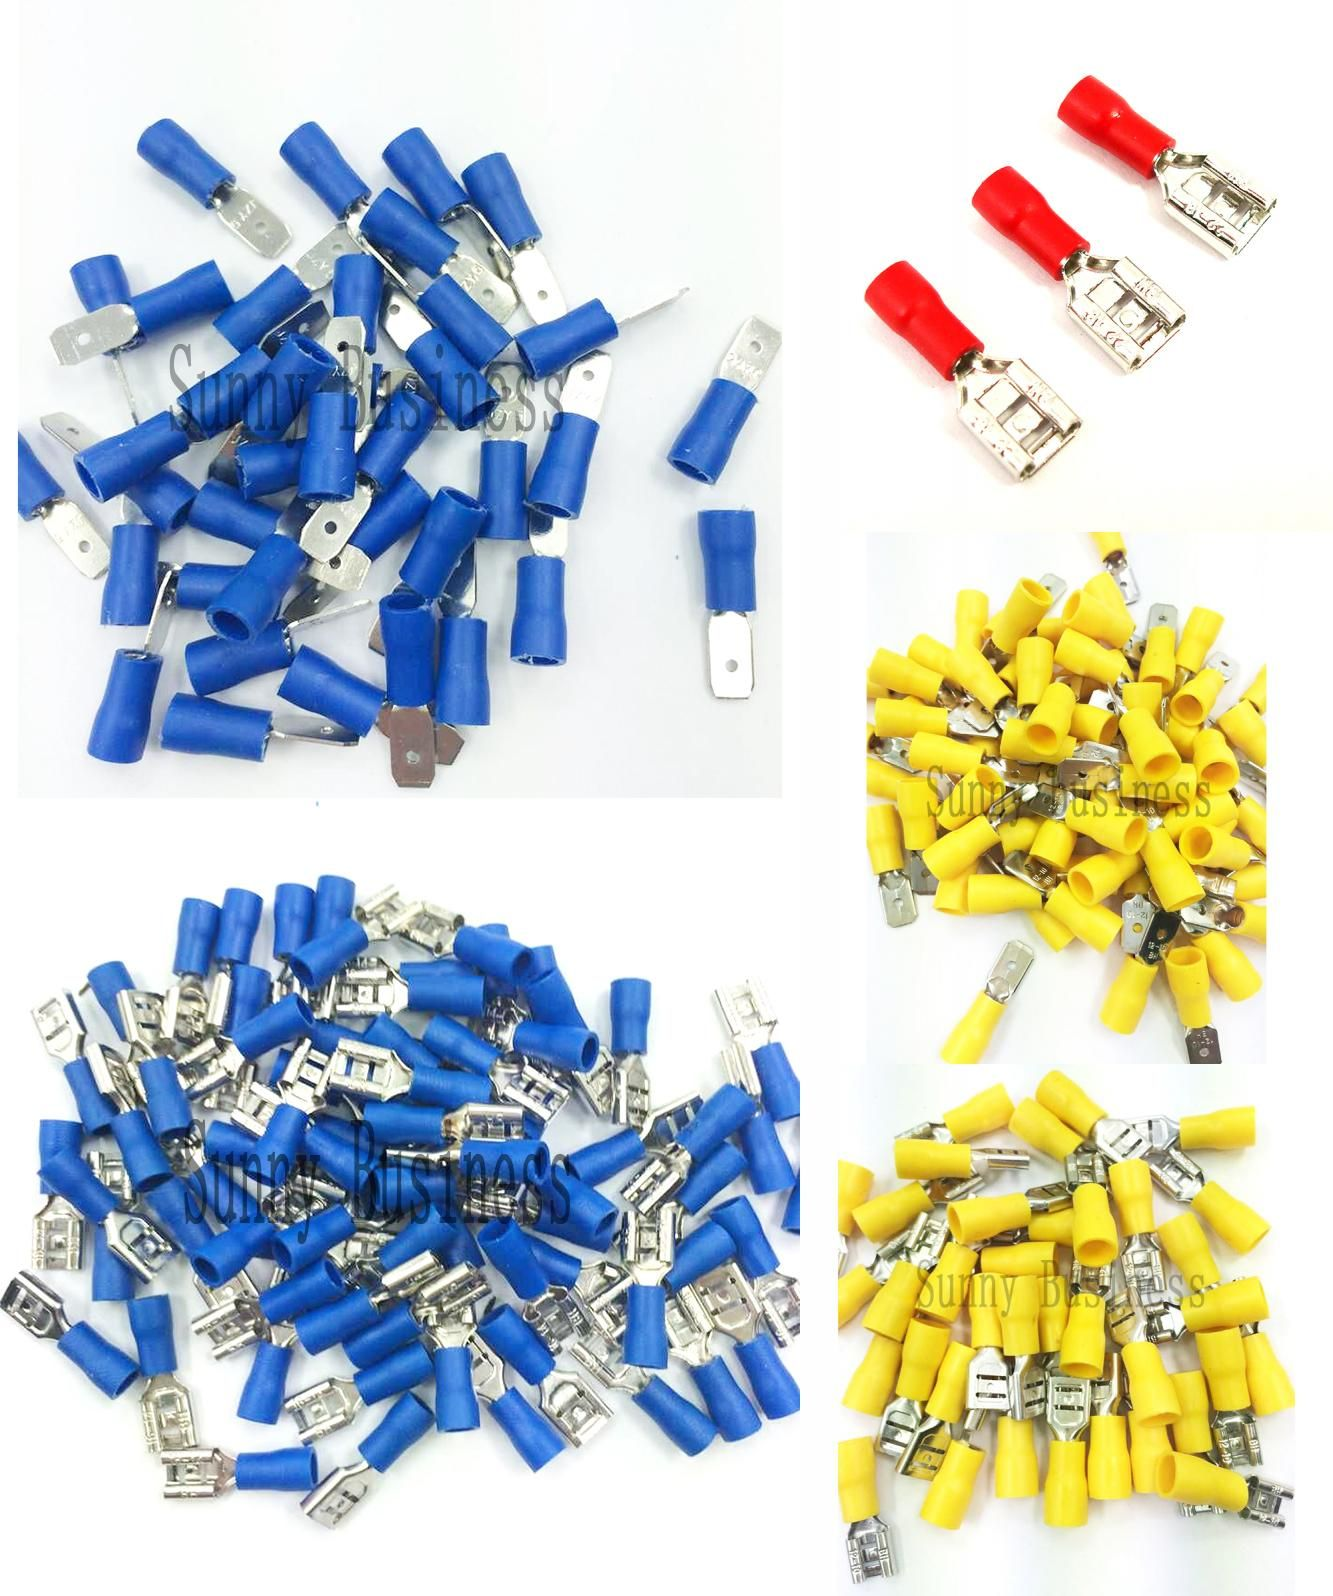 Visit to Buy] Good Quality 50pcs 4.8mm Female Insulated Wire ...